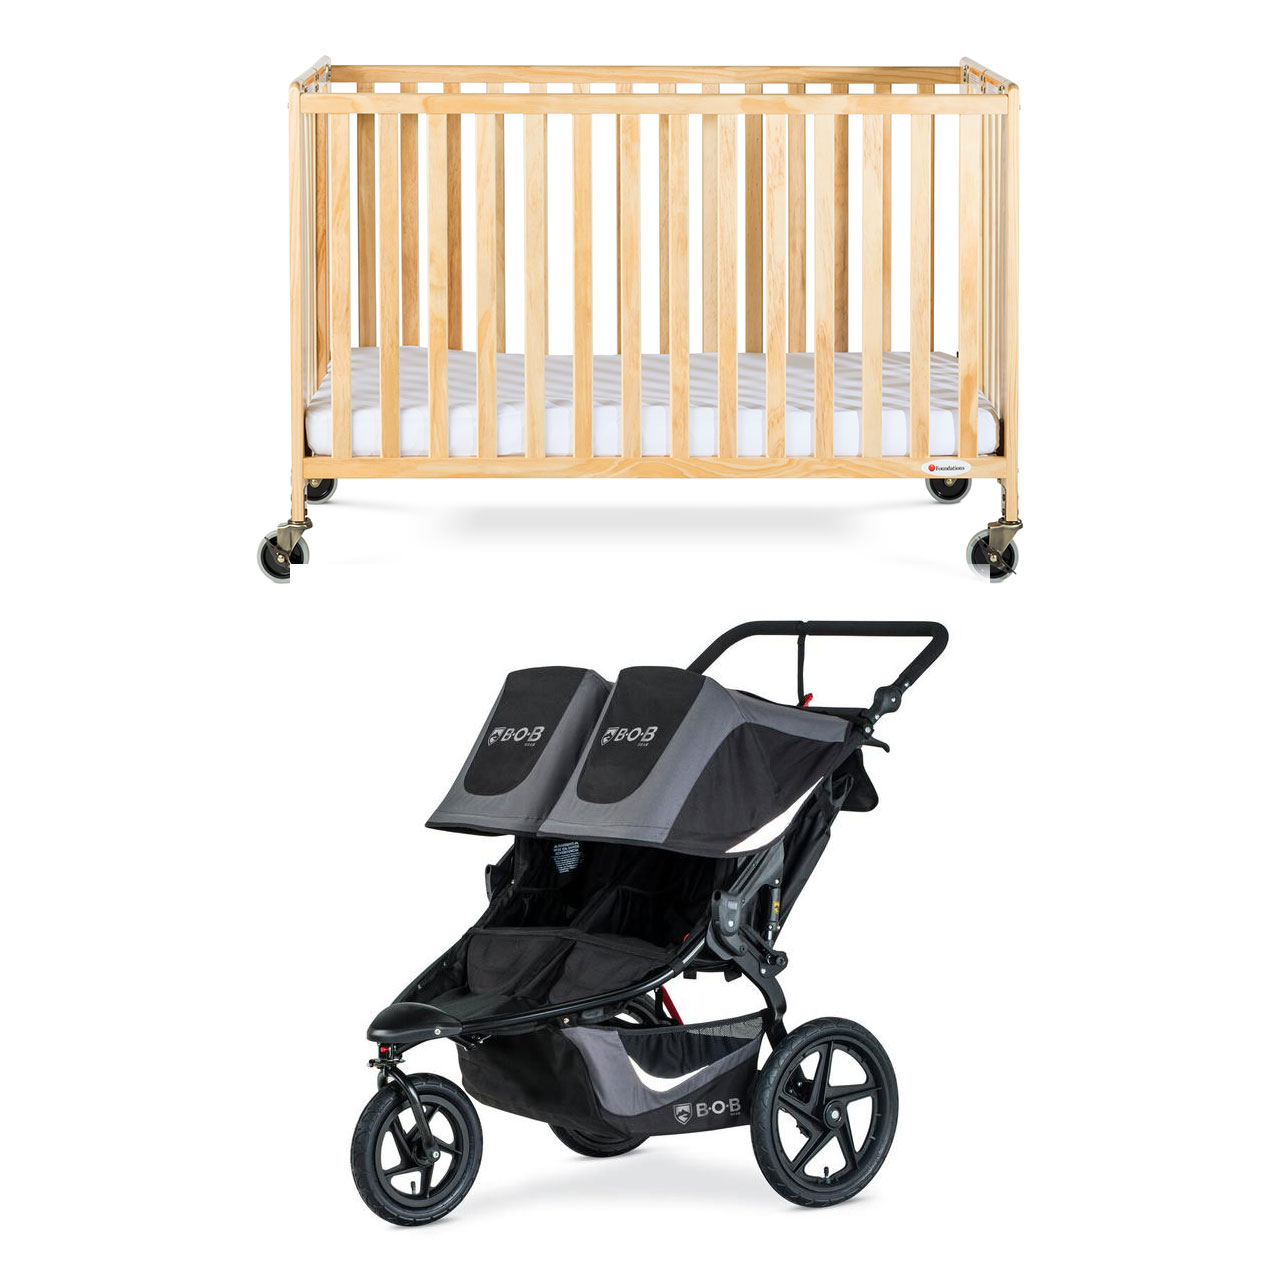 PACKAGE 18 ( FULL CRIB WITH DOUBLE STROLLER)